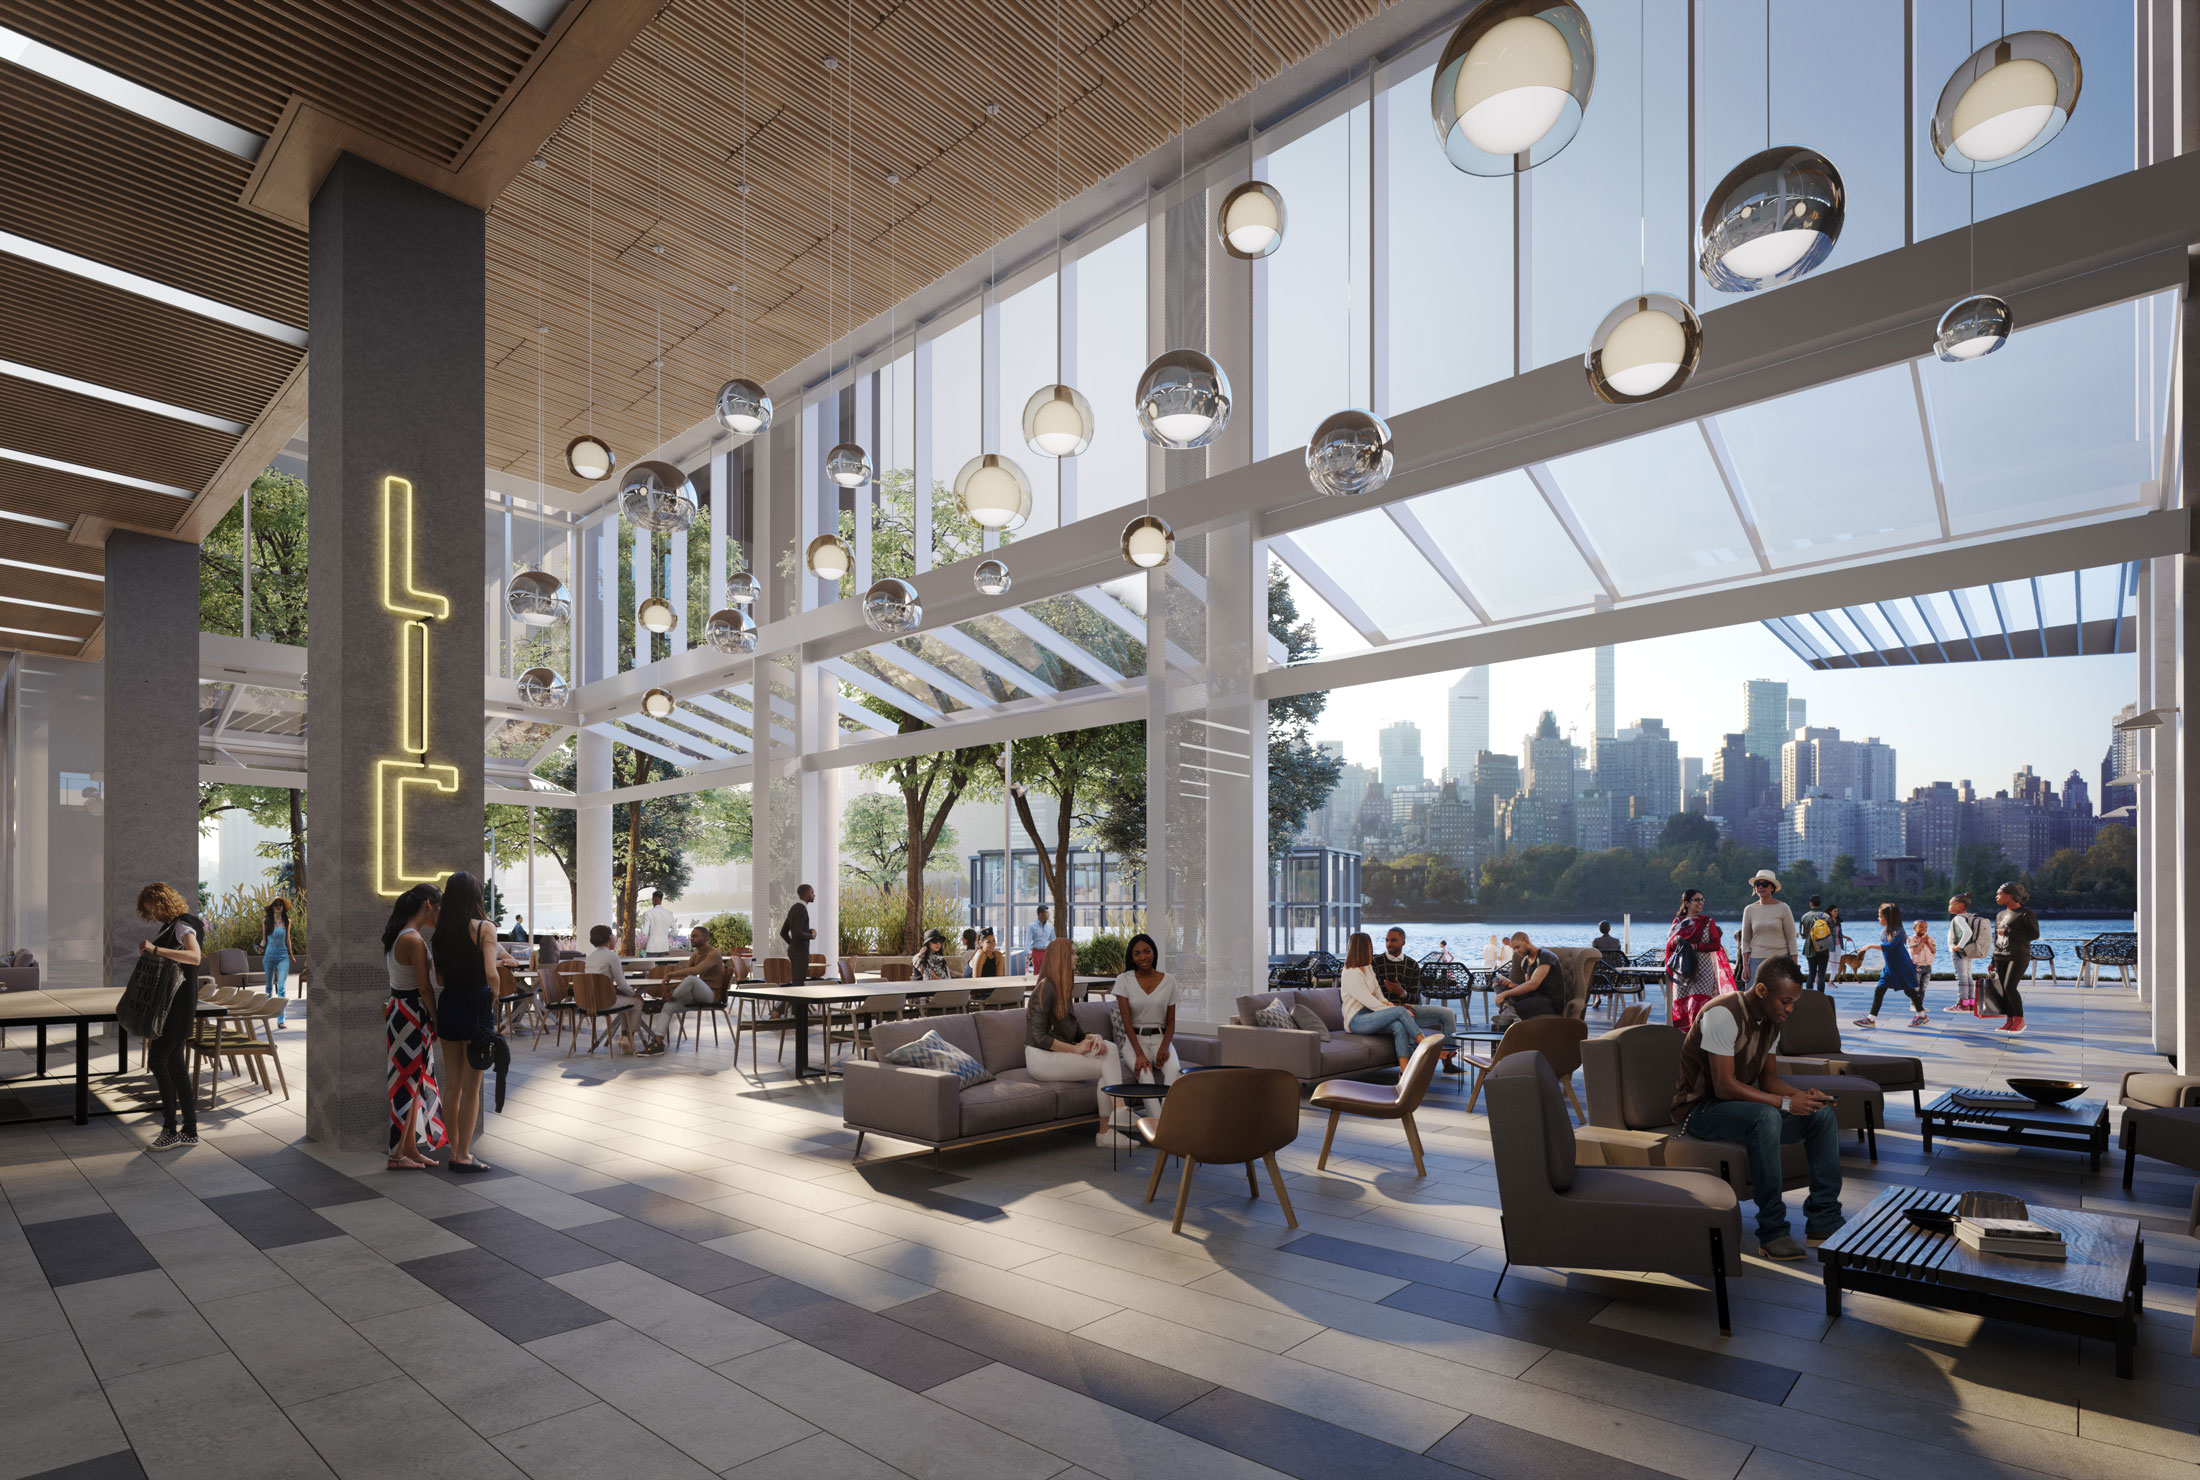 Architectural Rendering of the interior of the Anable Basin project located in Long Island City in Queens, New York